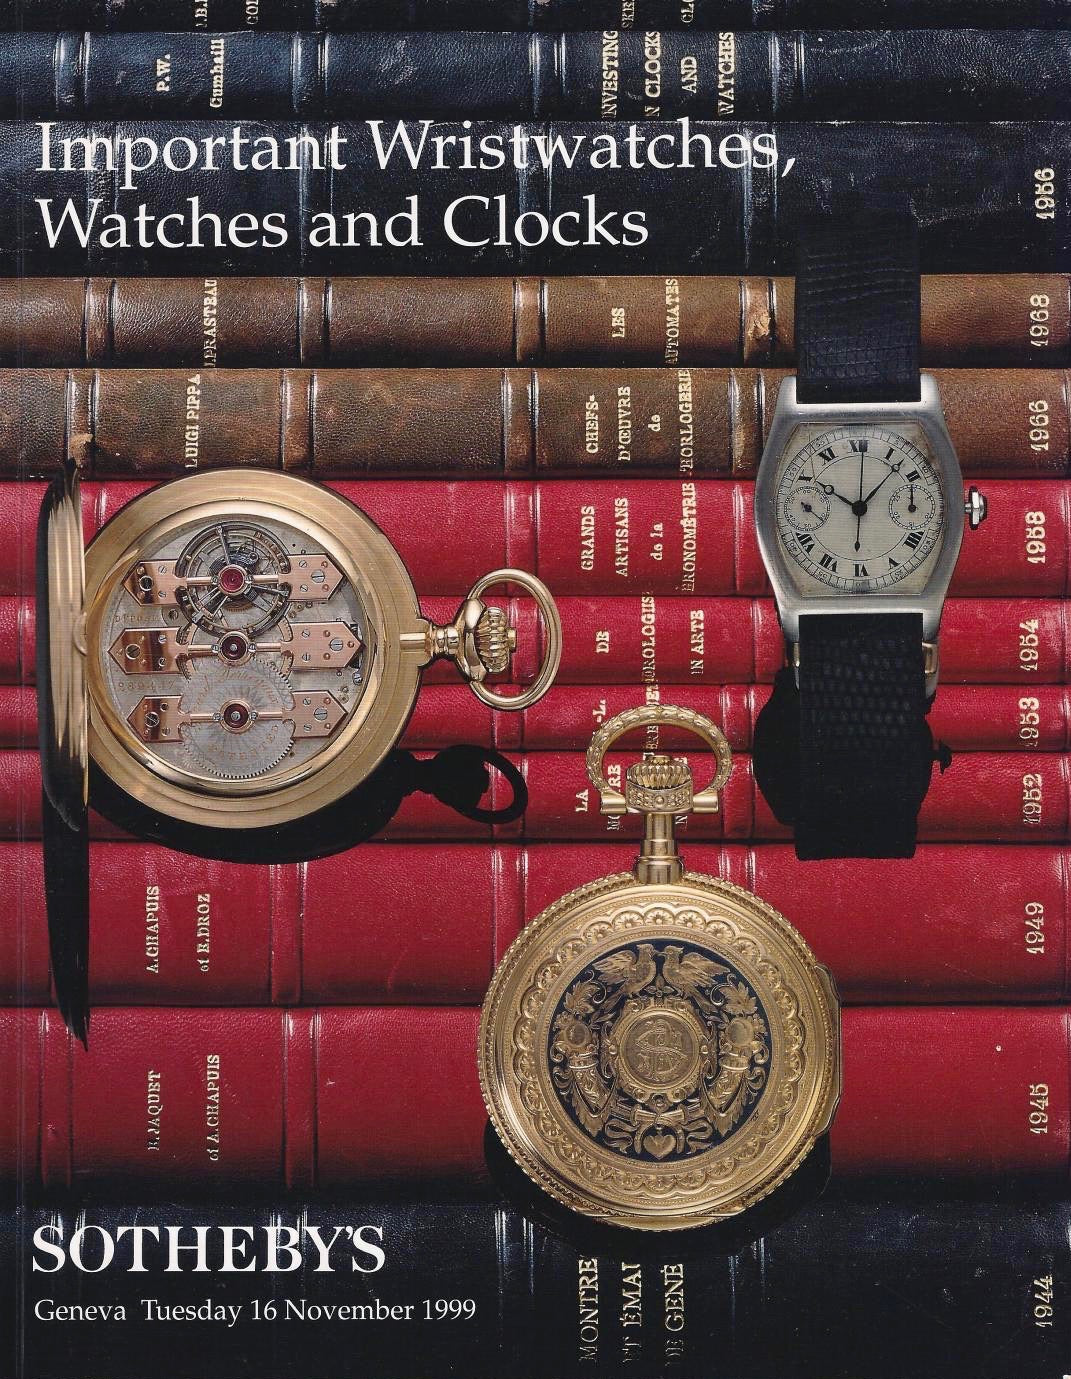 Sotheby's Important wristwatches, watches and clocks auction catalogues for A Collected Man London